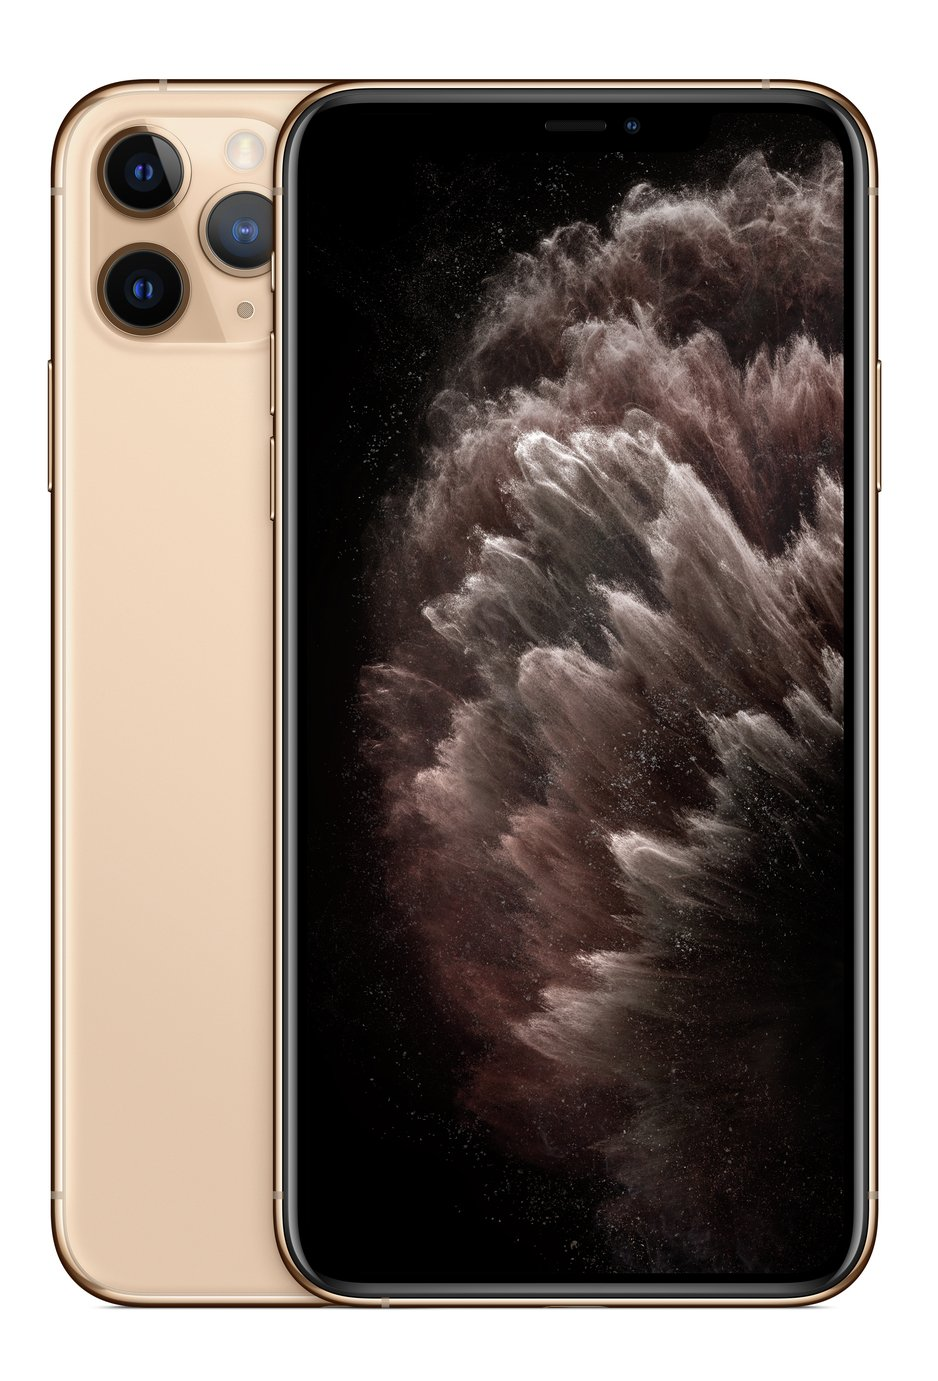 SIM Free iPhone 11 Pro Max 512GB Mobile Phone - Gold